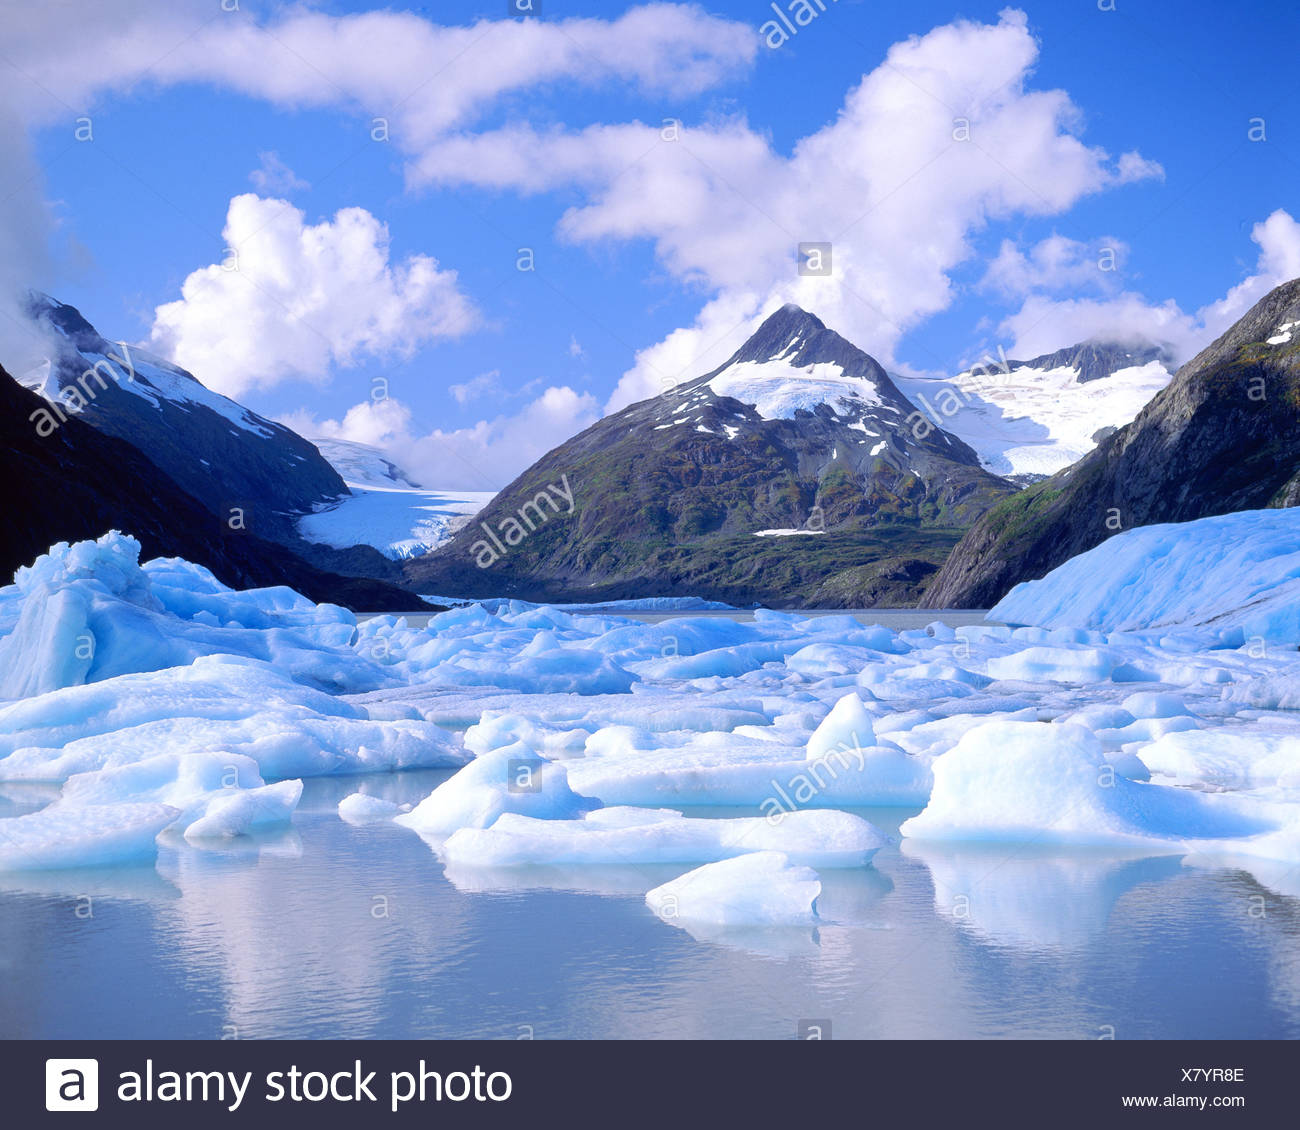 Floating ice bergs on Portage Lake - Stock Image